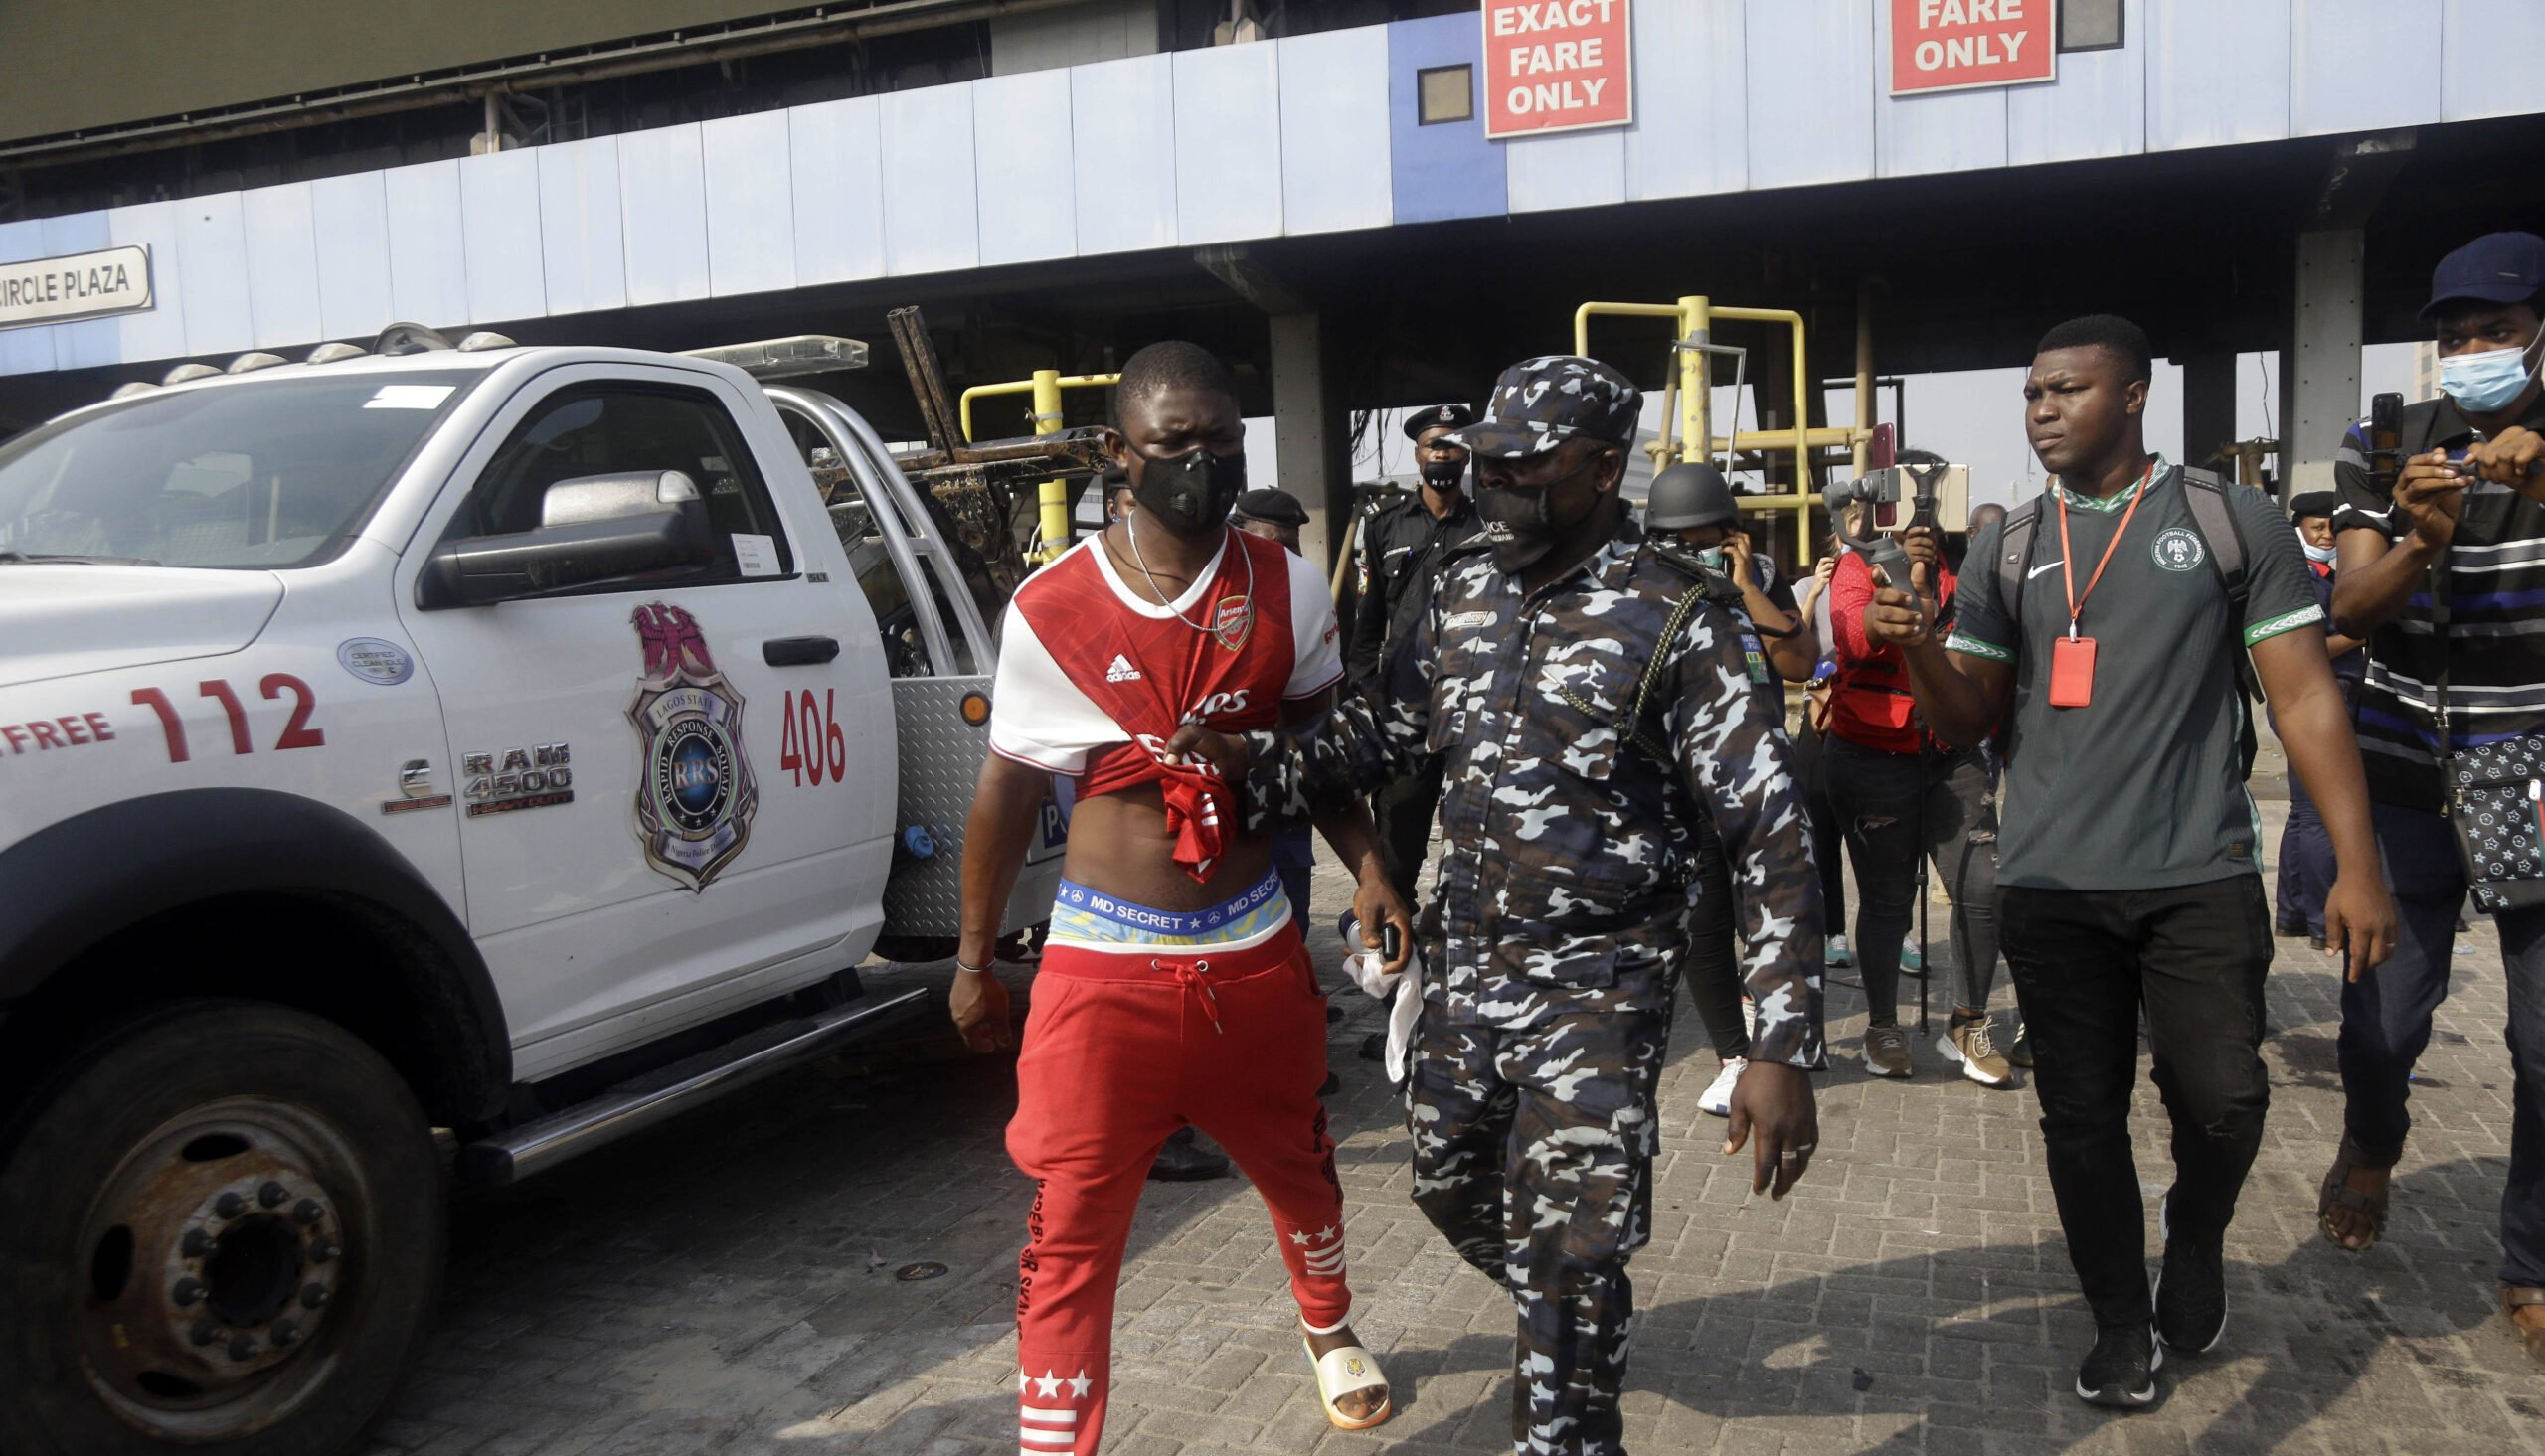 Nigeria: Has the #EndSARS movement come to an end?